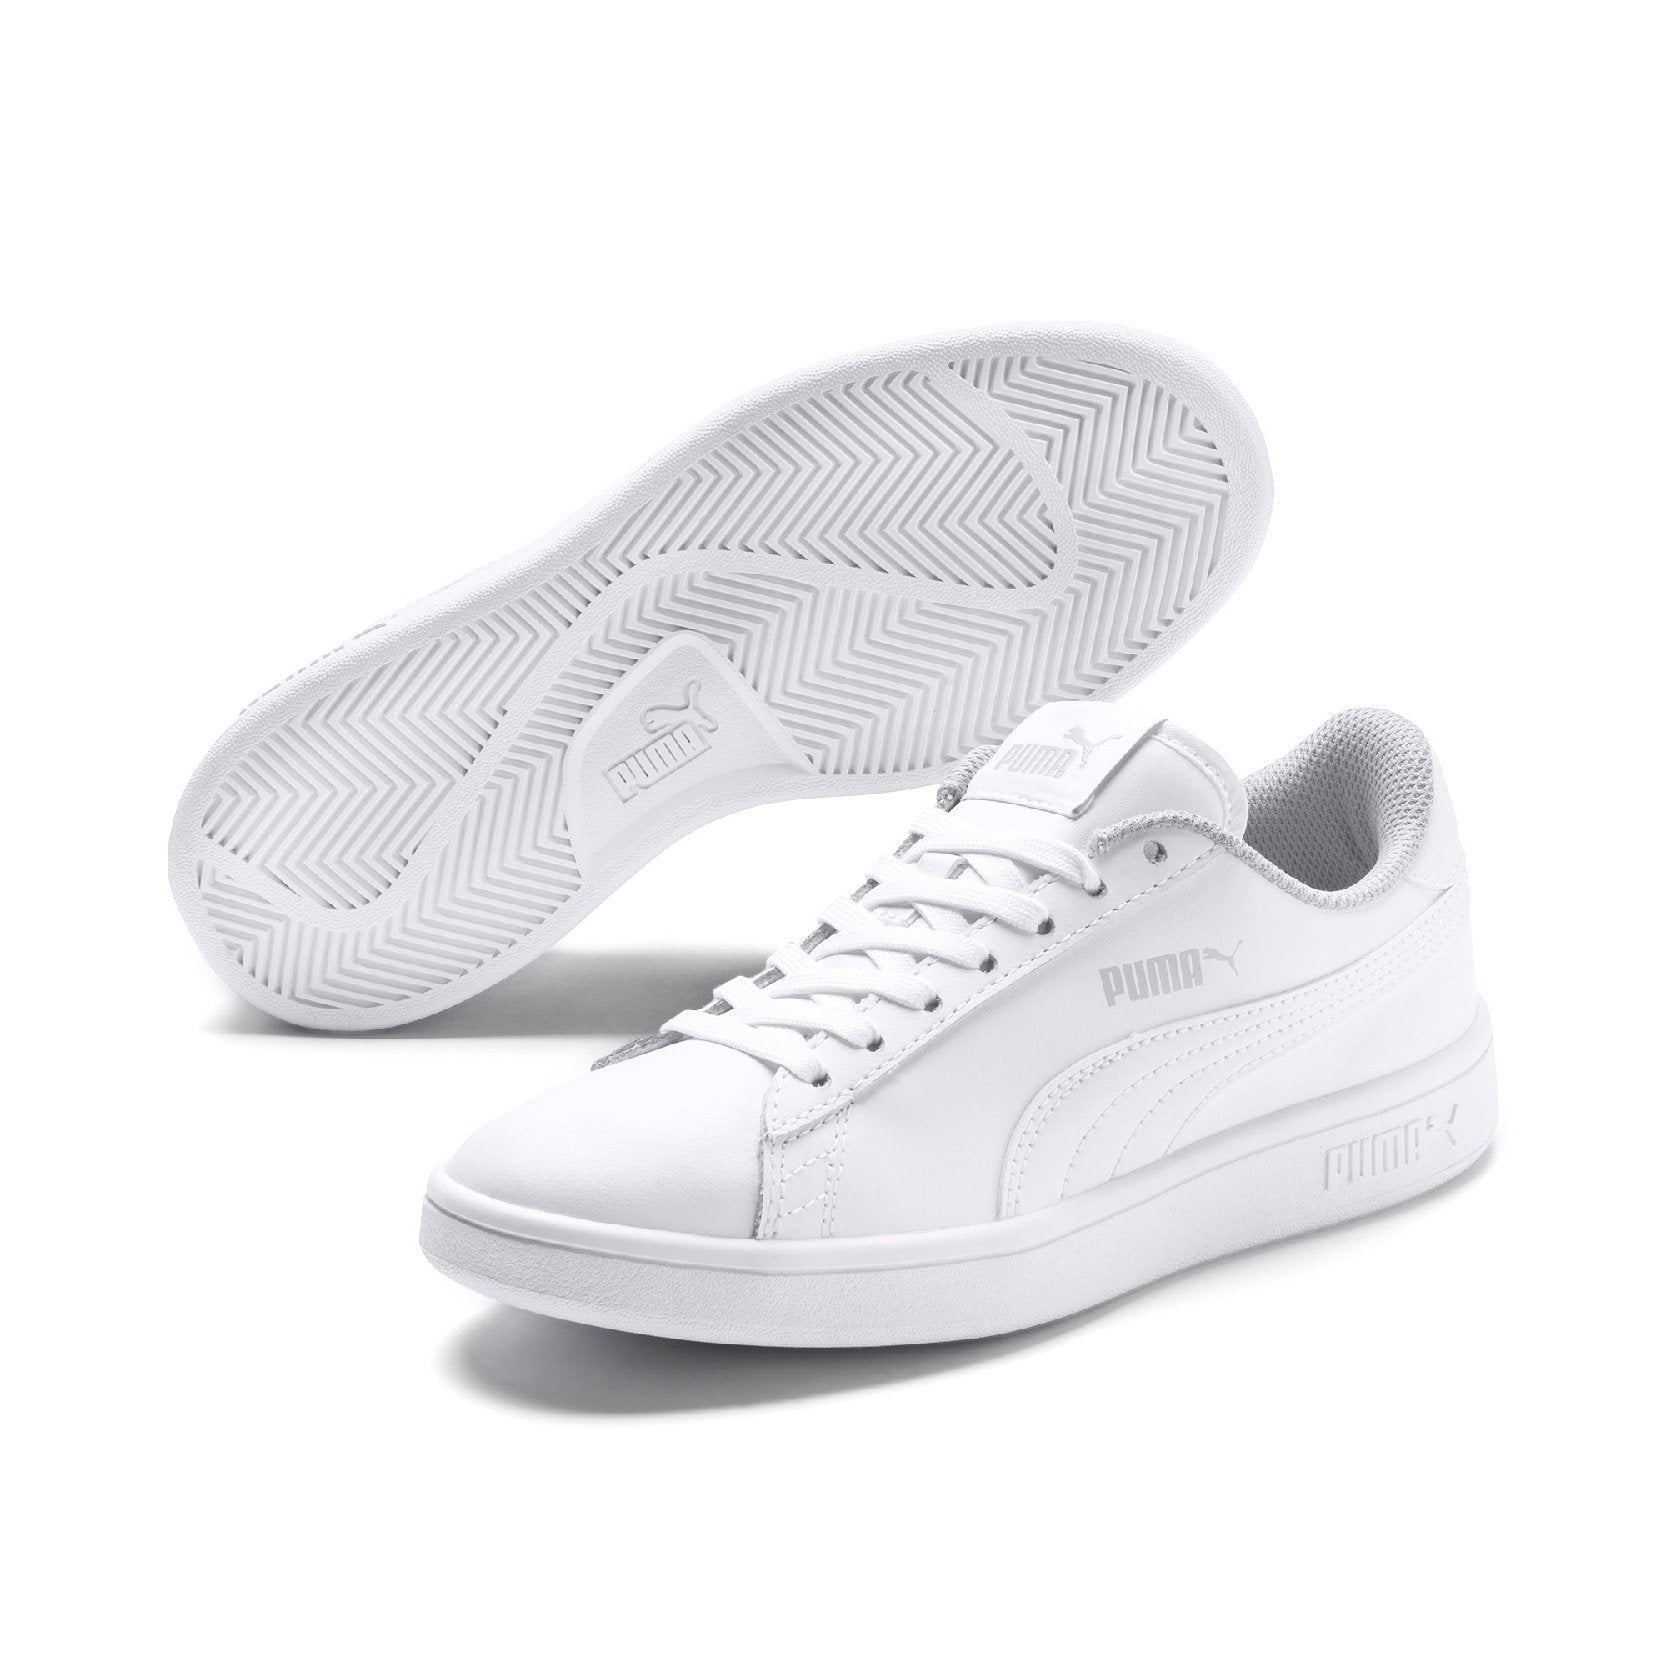 Puma Smash v2 Leather Junior - Puma White-Puma White SP-Footwear-Kids Puma